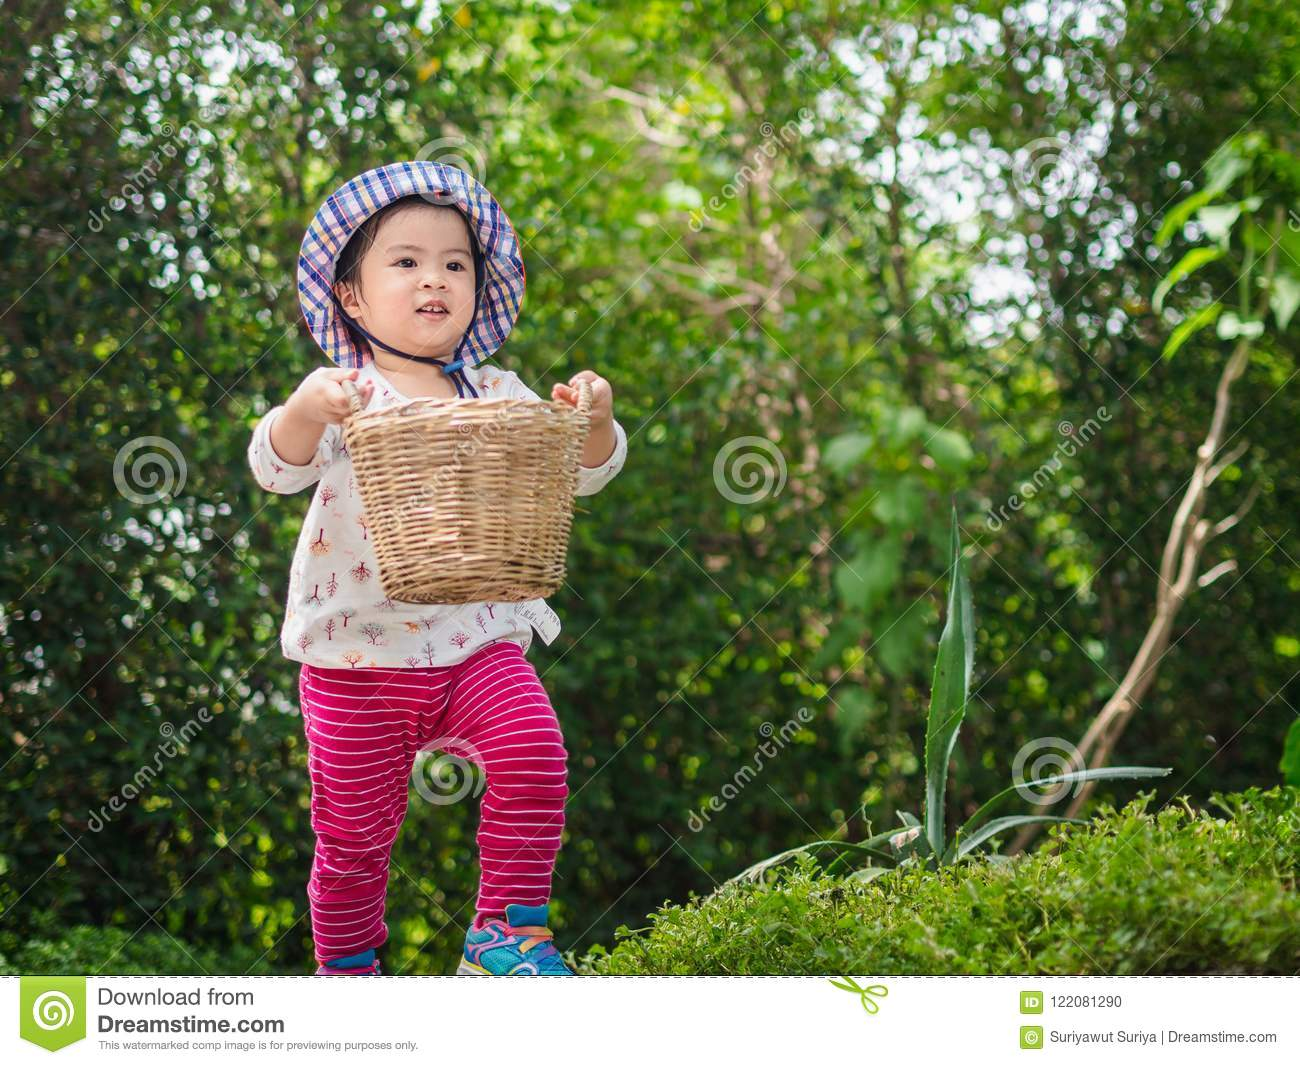 Happy little cute girl holding the basket and runing in the garden. Farm, Happy, Children Concept.